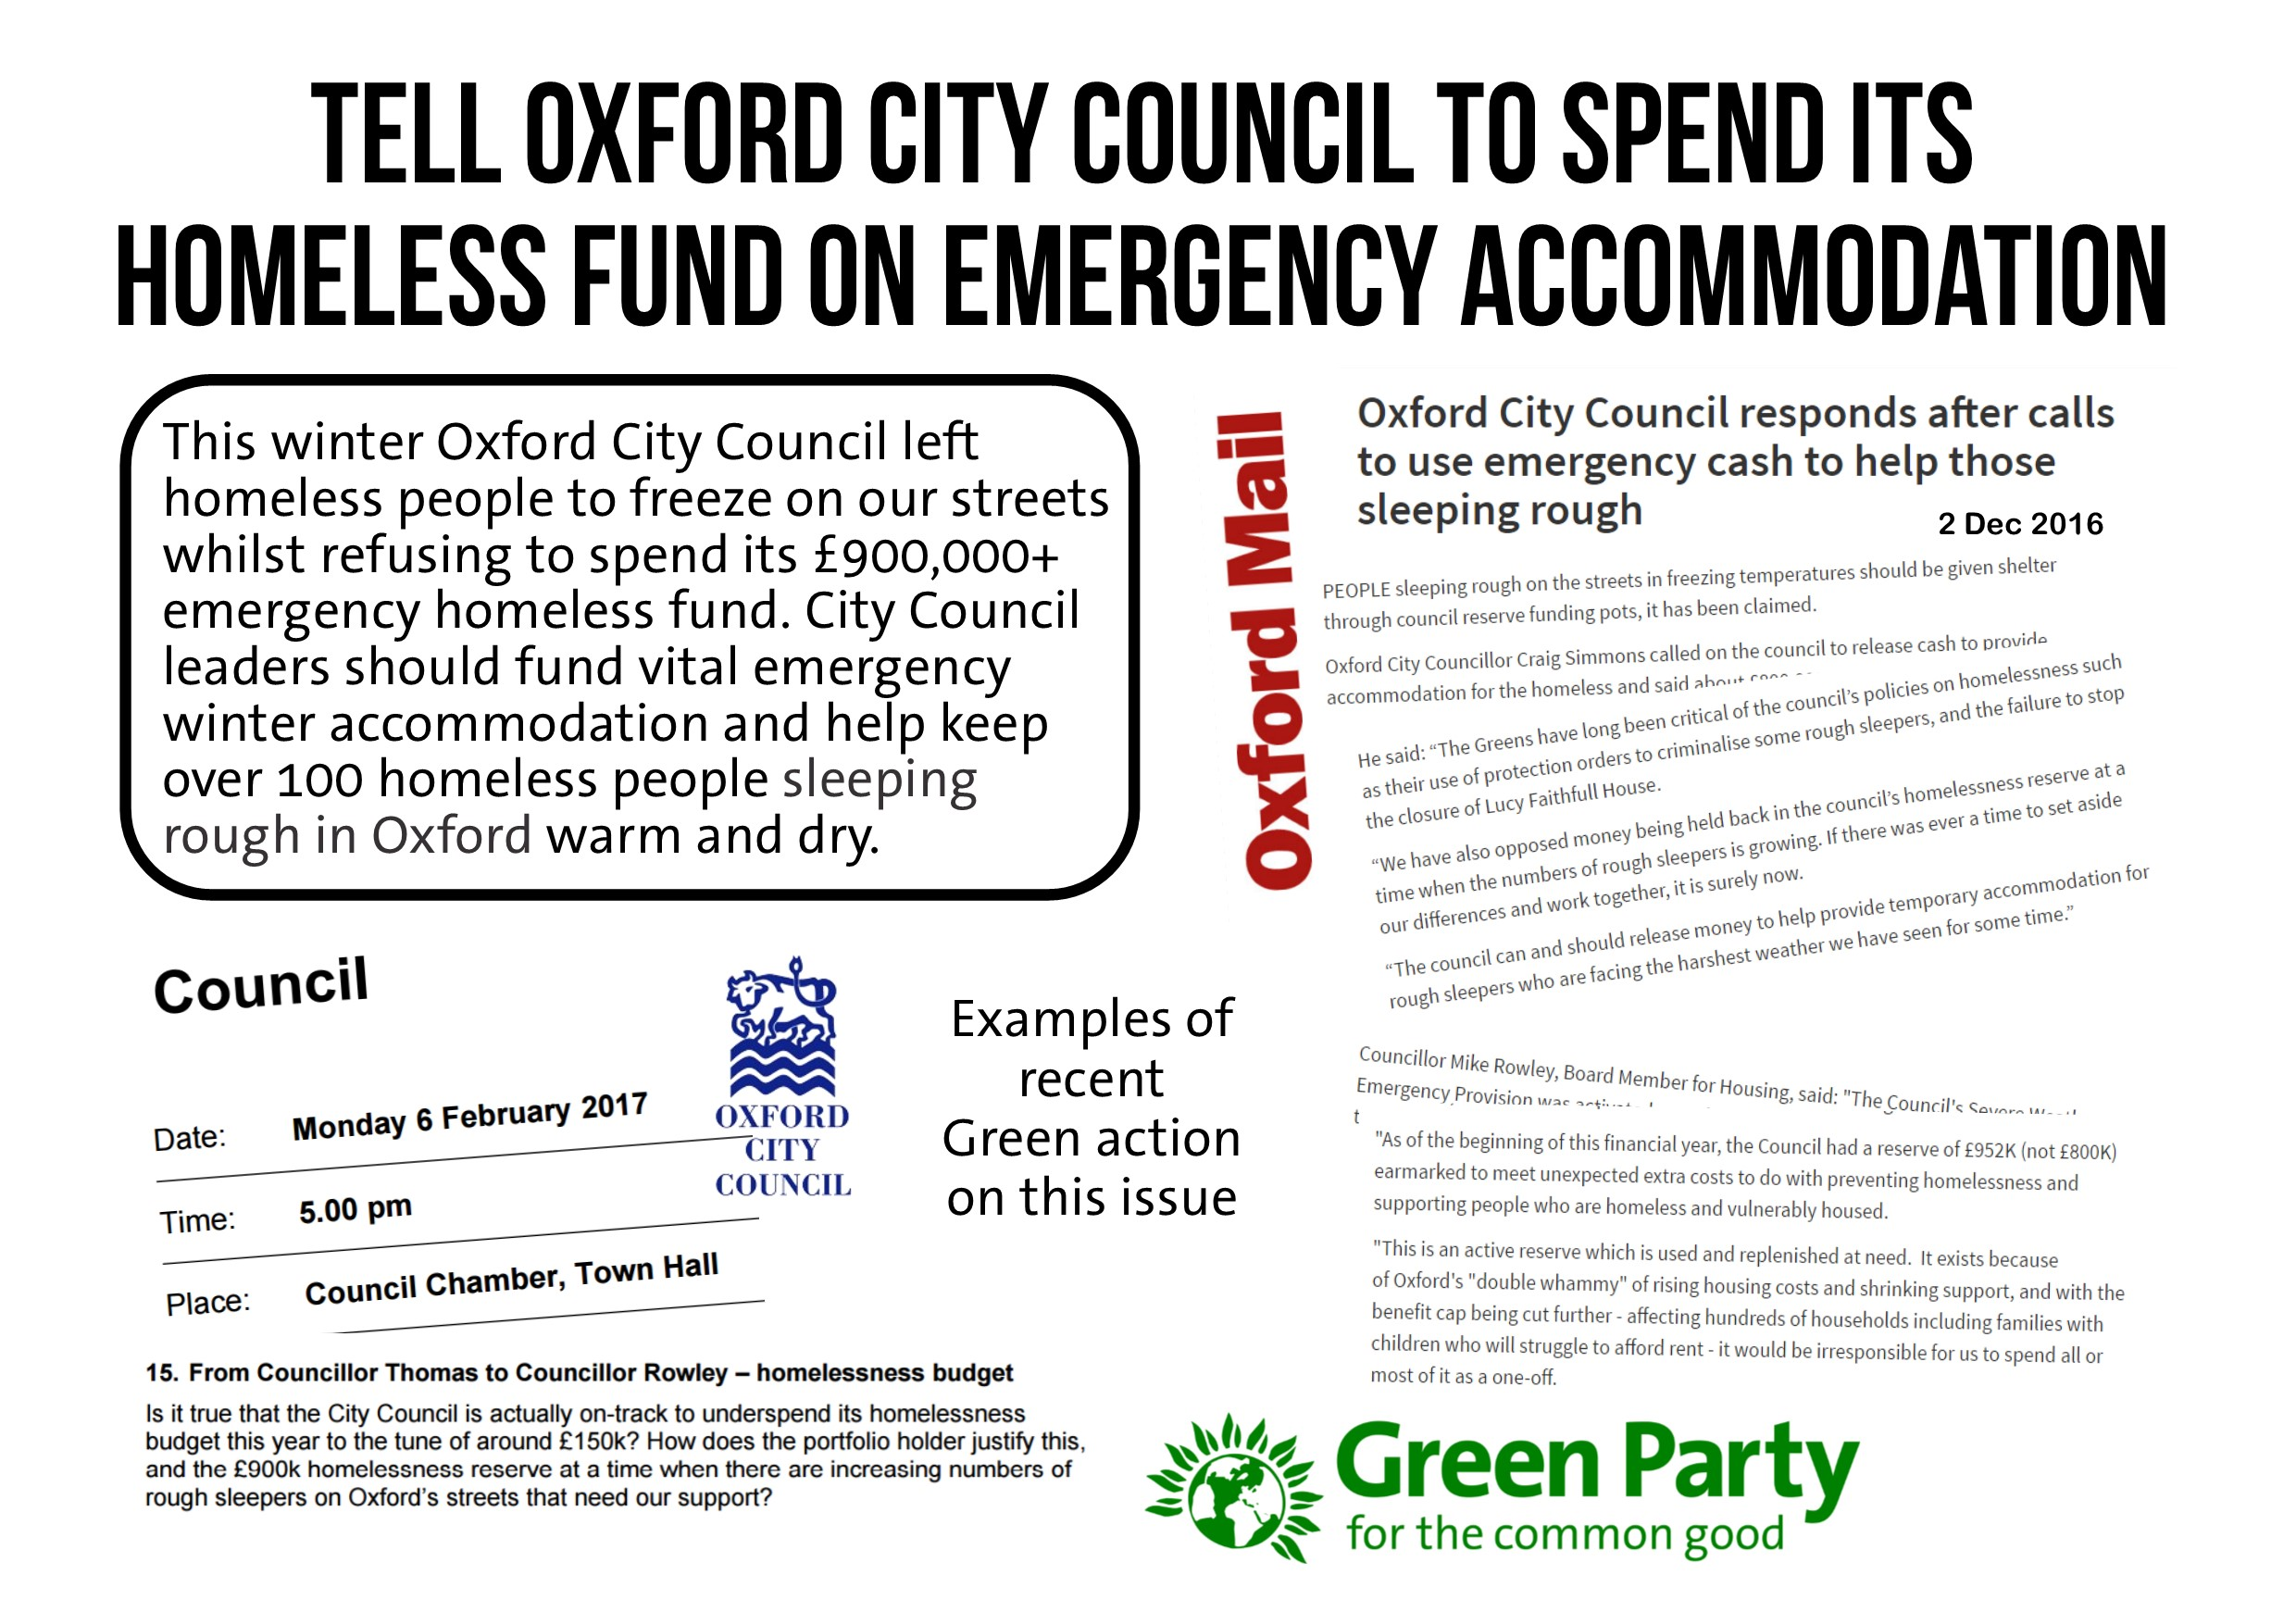 Council_Homeless_Funds_display_A3.jpg